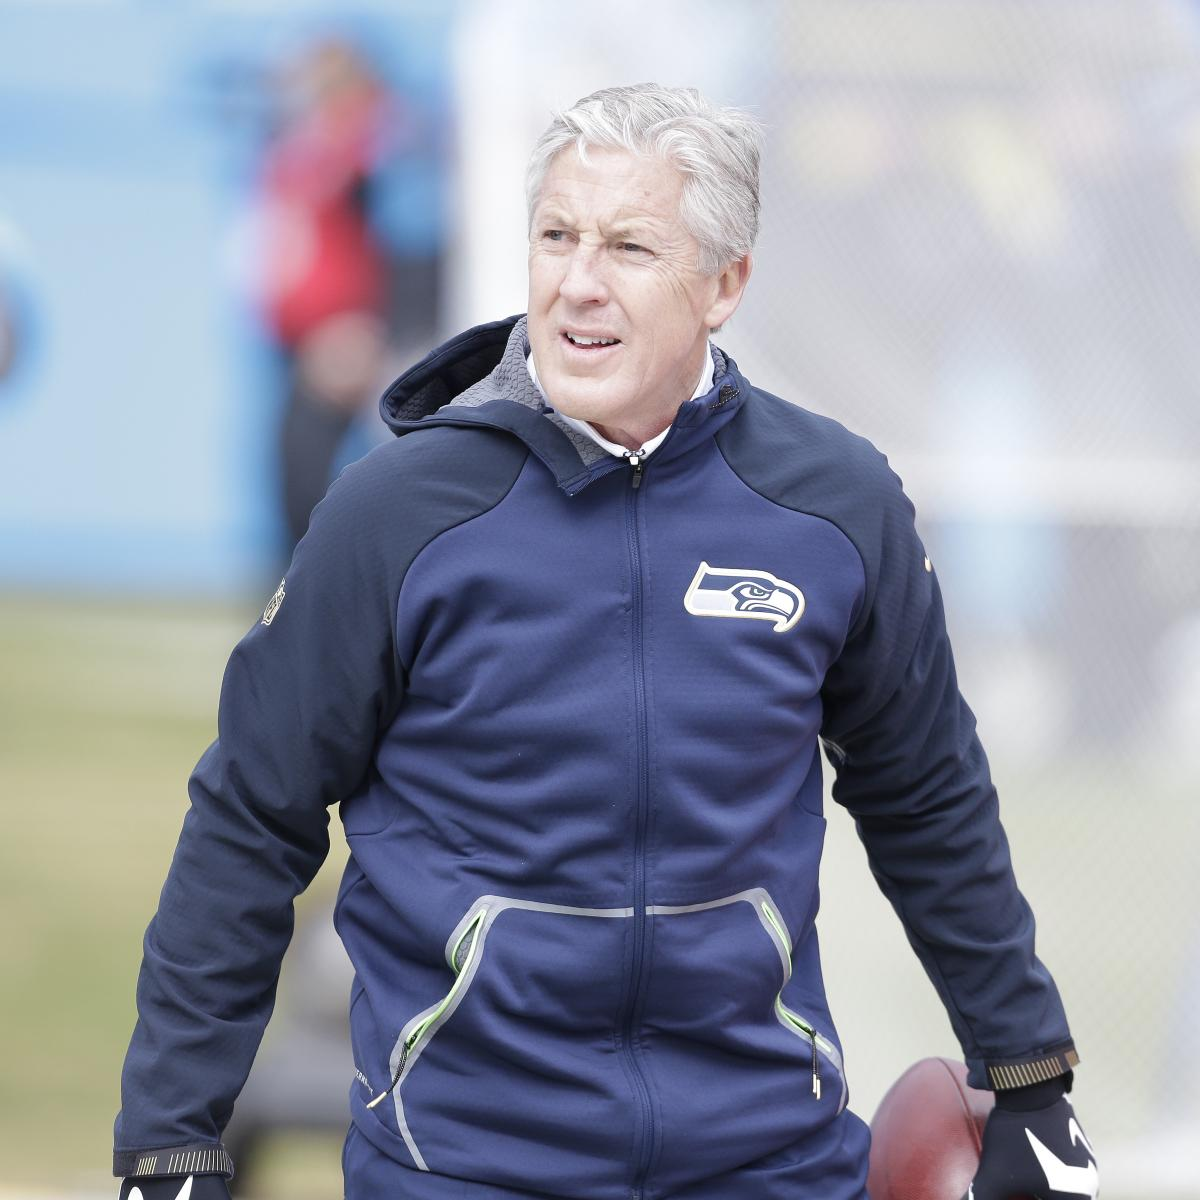 Seattle Seahawks Sign Doug Baldwin To 4 Year Extension: Pete Carroll, Seahawks Agree On New Contract: Latest